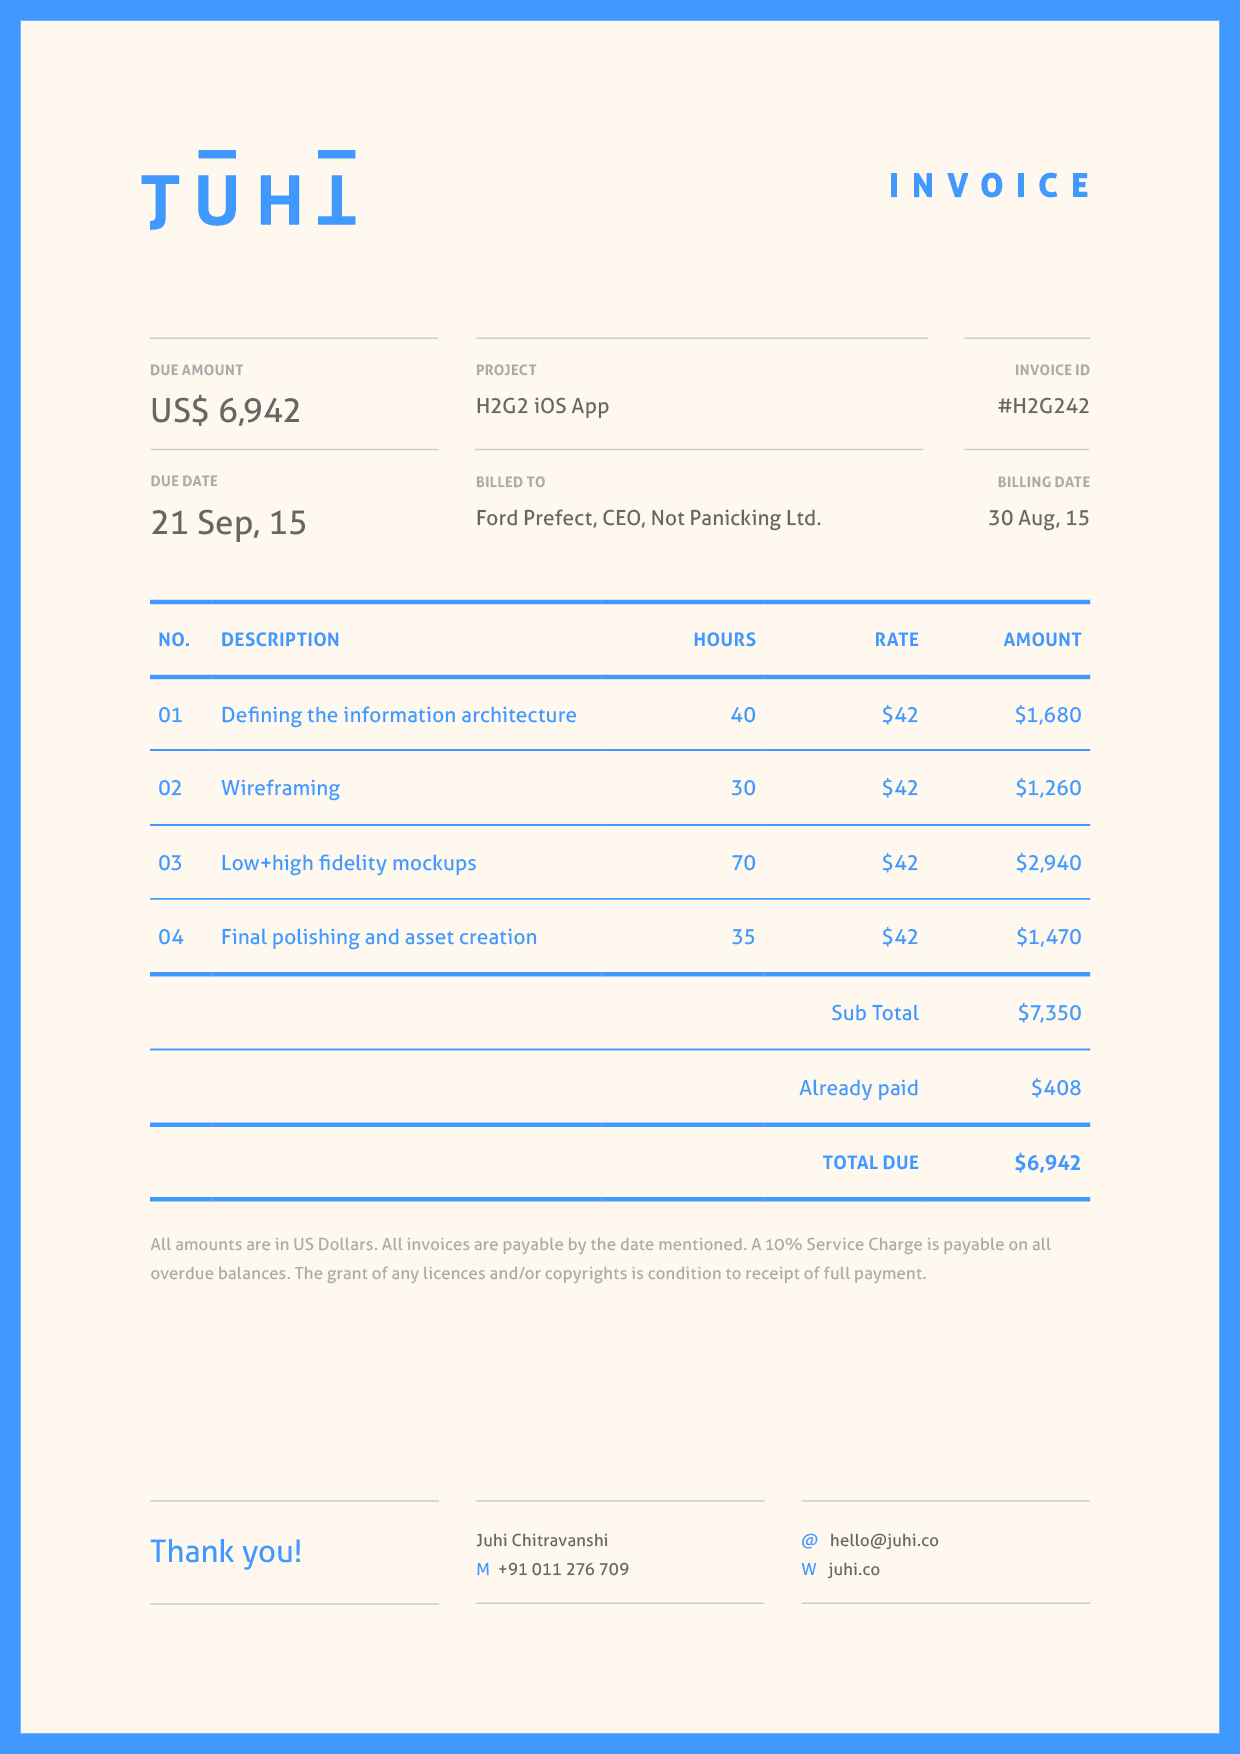 Centralasianshepherdus  Splendid Dont Hold Back On Your Invoice  Inspiring Designs  With Gorgeous Invoice By Juhi Chitravanshi Follow With Breathtaking How To Make A Fake Invoice Also Car Dealer Invoice Prices In Addition Model Invoice Template And Commercial Shipping Invoice As Well As  Accord Invoice Additionally Payment Terms On Invoice From Inspirationfeedcom With Centralasianshepherdus  Gorgeous Dont Hold Back On Your Invoice  Inspiring Designs  With Breathtaking Invoice By Juhi Chitravanshi Follow And Splendid How To Make A Fake Invoice Also Car Dealer Invoice Prices In Addition Model Invoice Template From Inspirationfeedcom